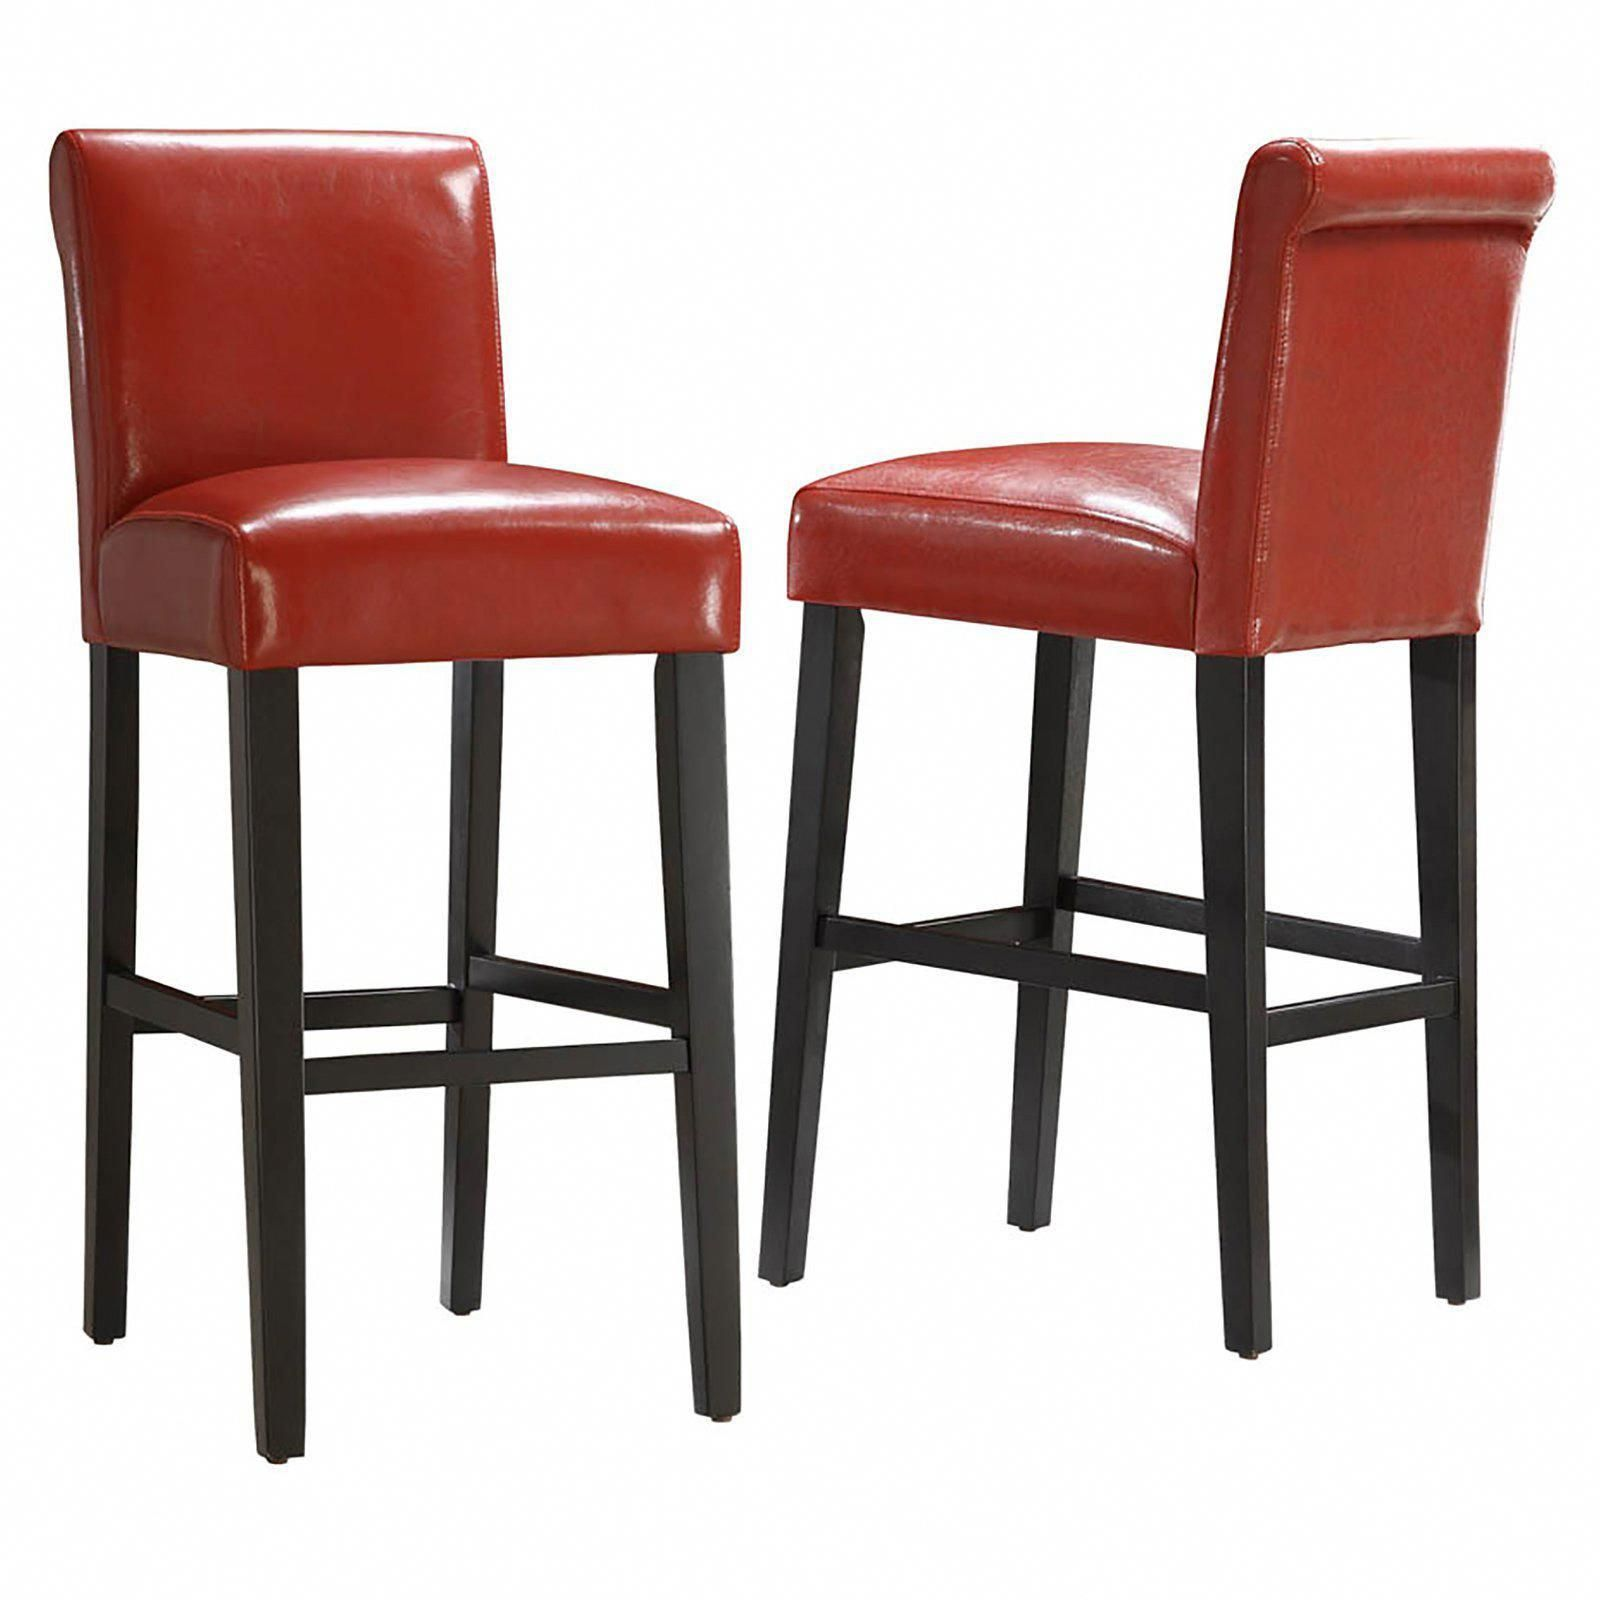 Determine Even More Relevant Information On Counter Height Table Square Visit Our Web Site Counterhei Leather Counter Stools Leather Bar Stools Bar Stools